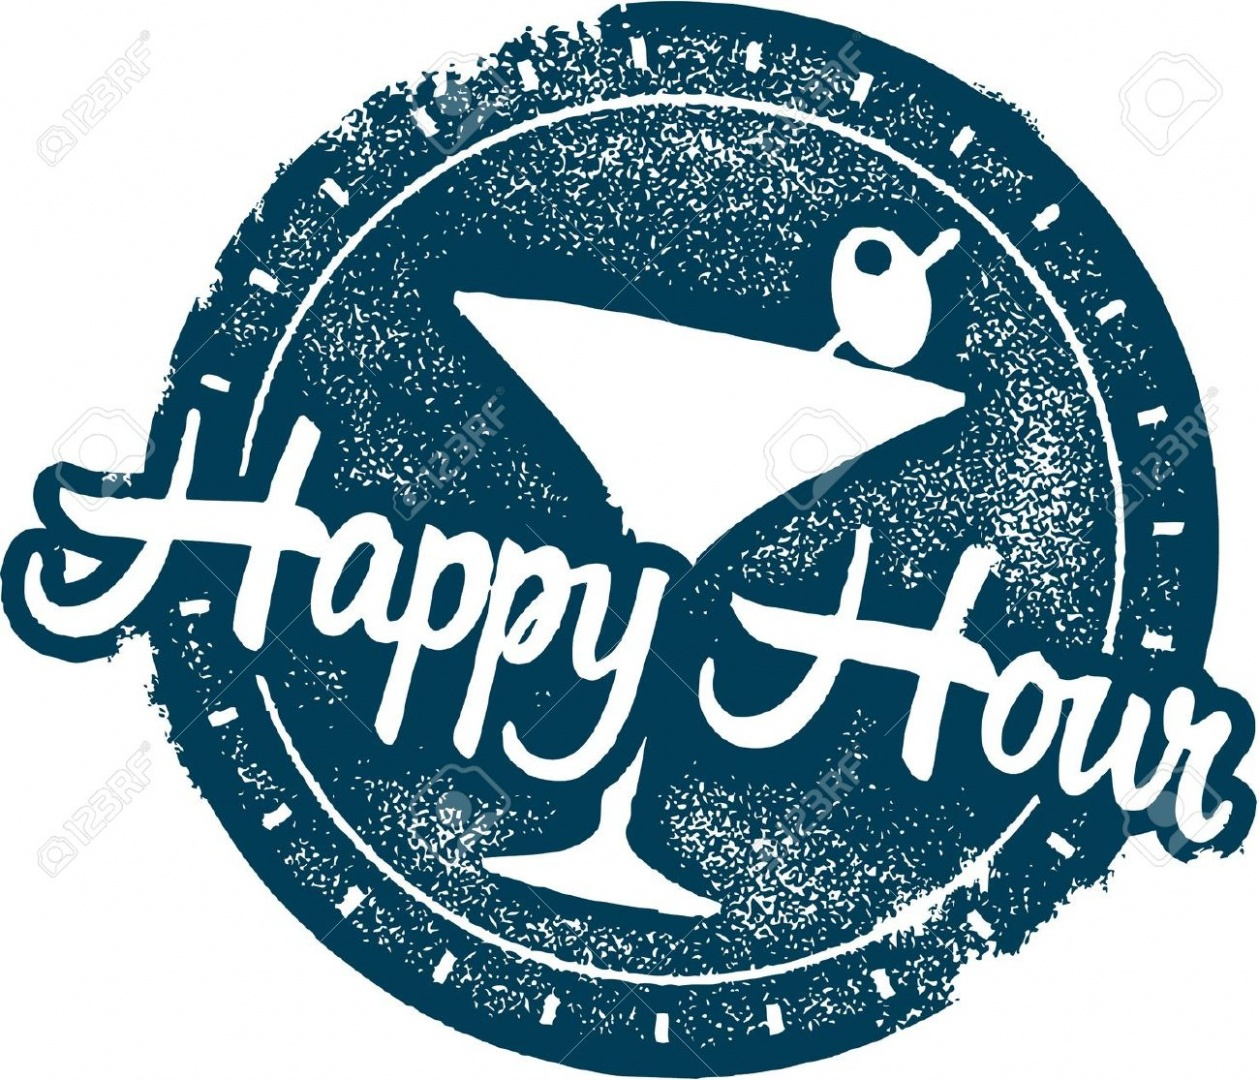 1259x1080 20341467 Happy Hour Cocktail Bar Stamp Stock Vector League Of